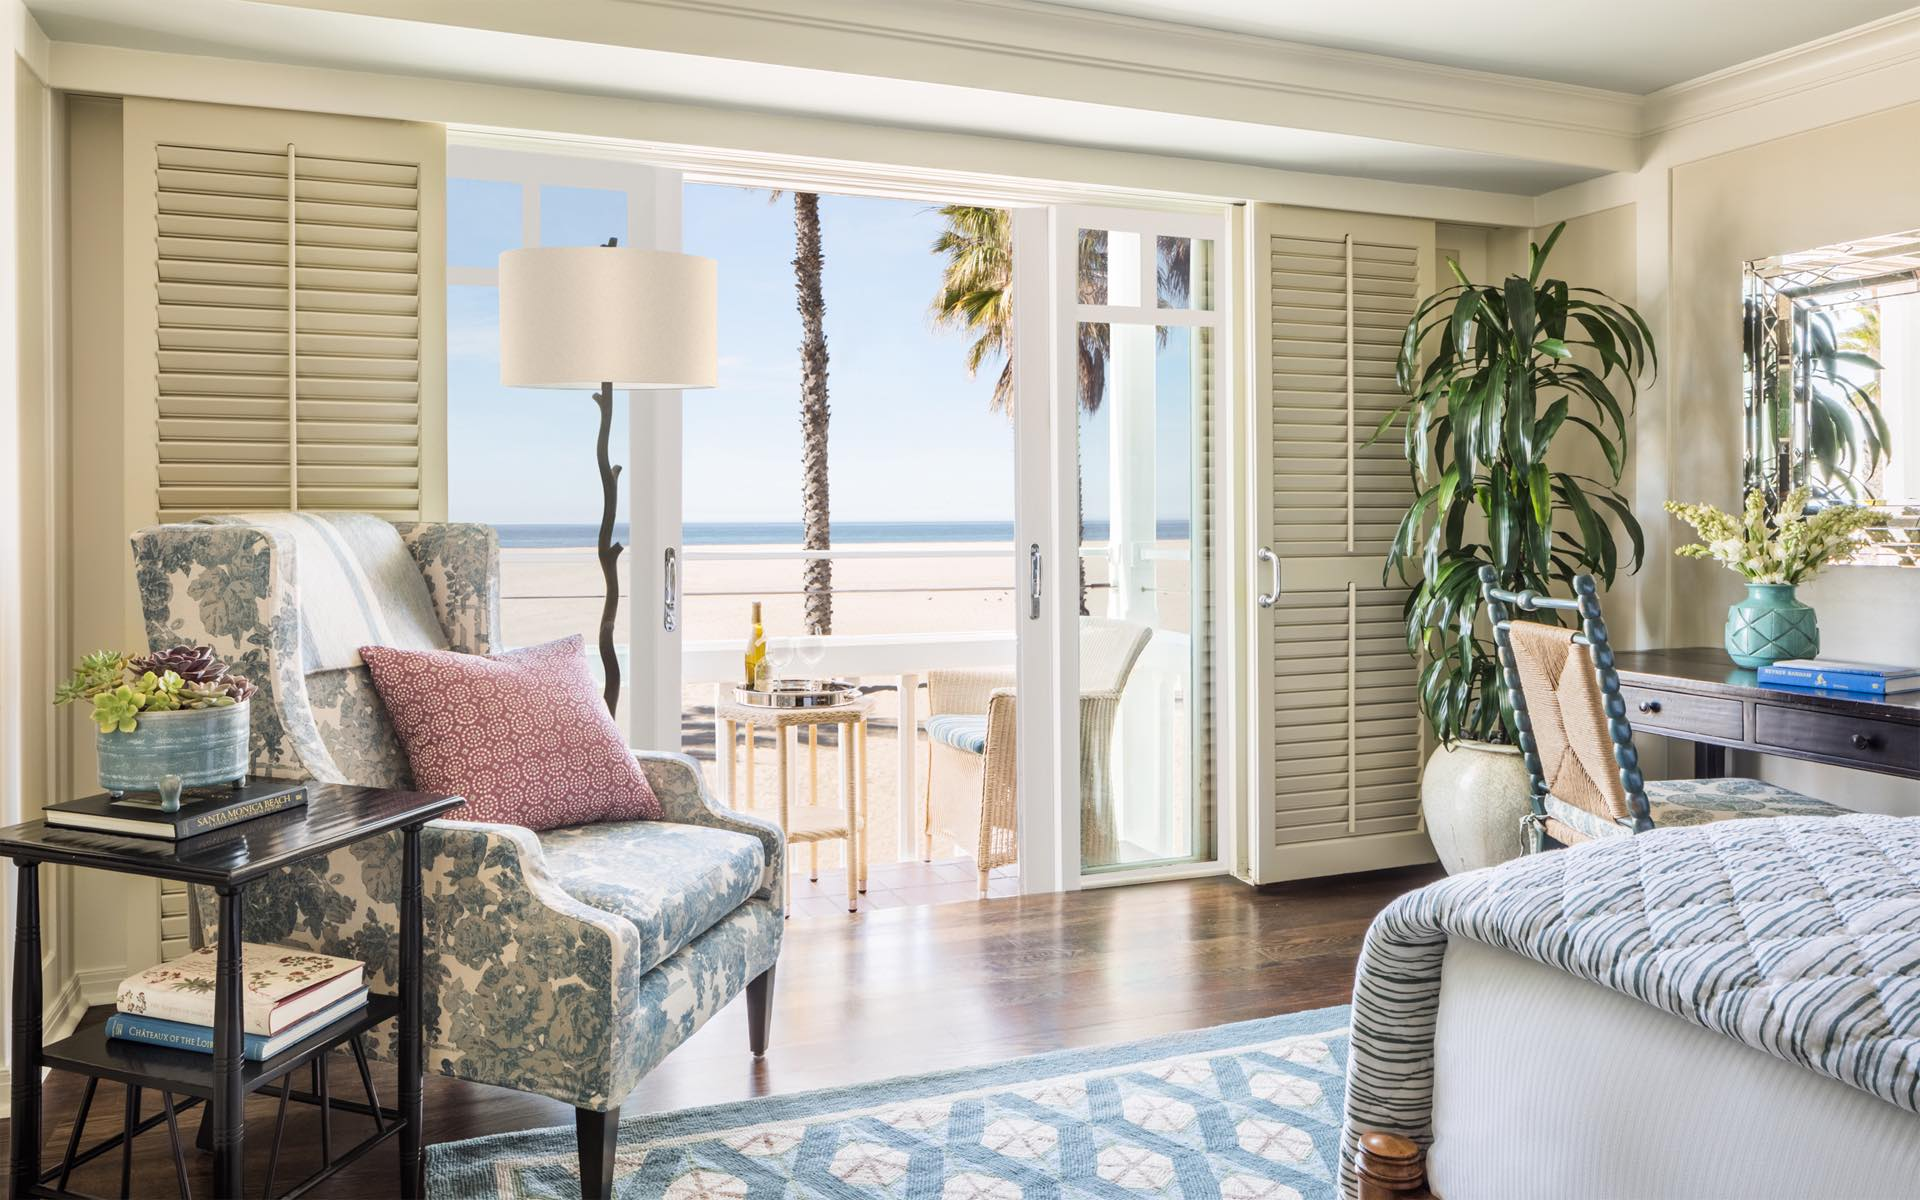 Full access to the amenities of shutters on the beach, including: Santa Monica Hotel Luxury Beach Hotel The Iconic Shutters On The Beach